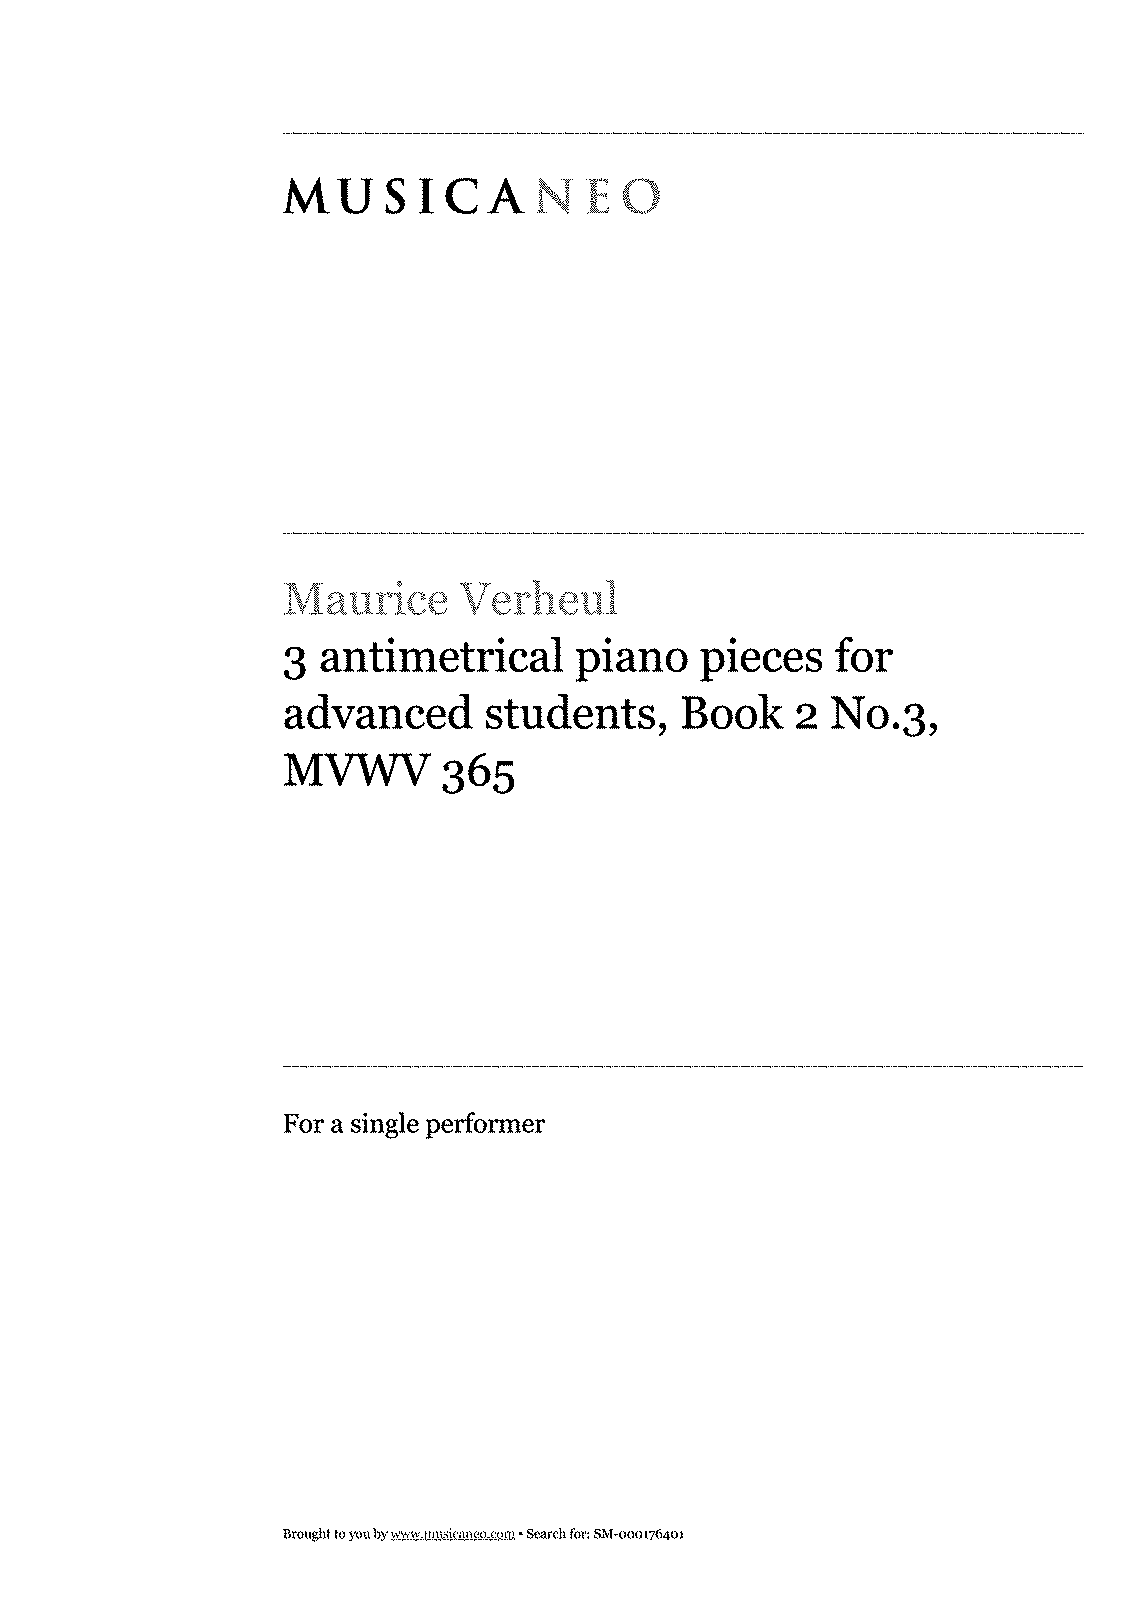 PMLP718824-3 antimetrical piano pieces for advanced students book 2 no 3 mvwv 365.pdf